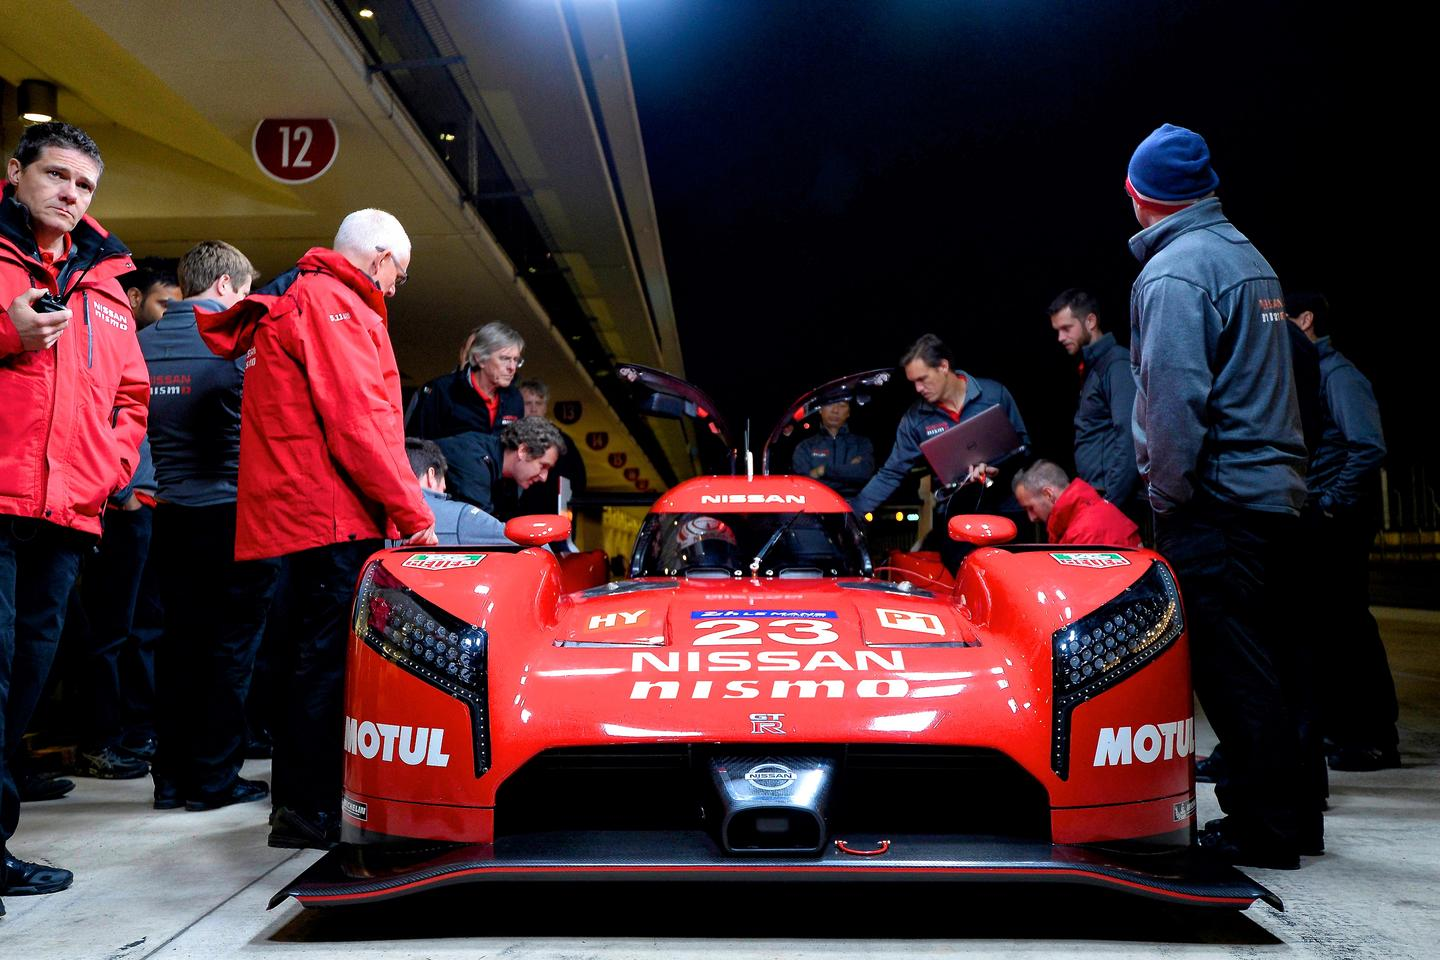 The Nissan GT-R LM NISMO LM P1 is, to put it bluntly, one of the craziest ideas to pull out onto a race track in decades